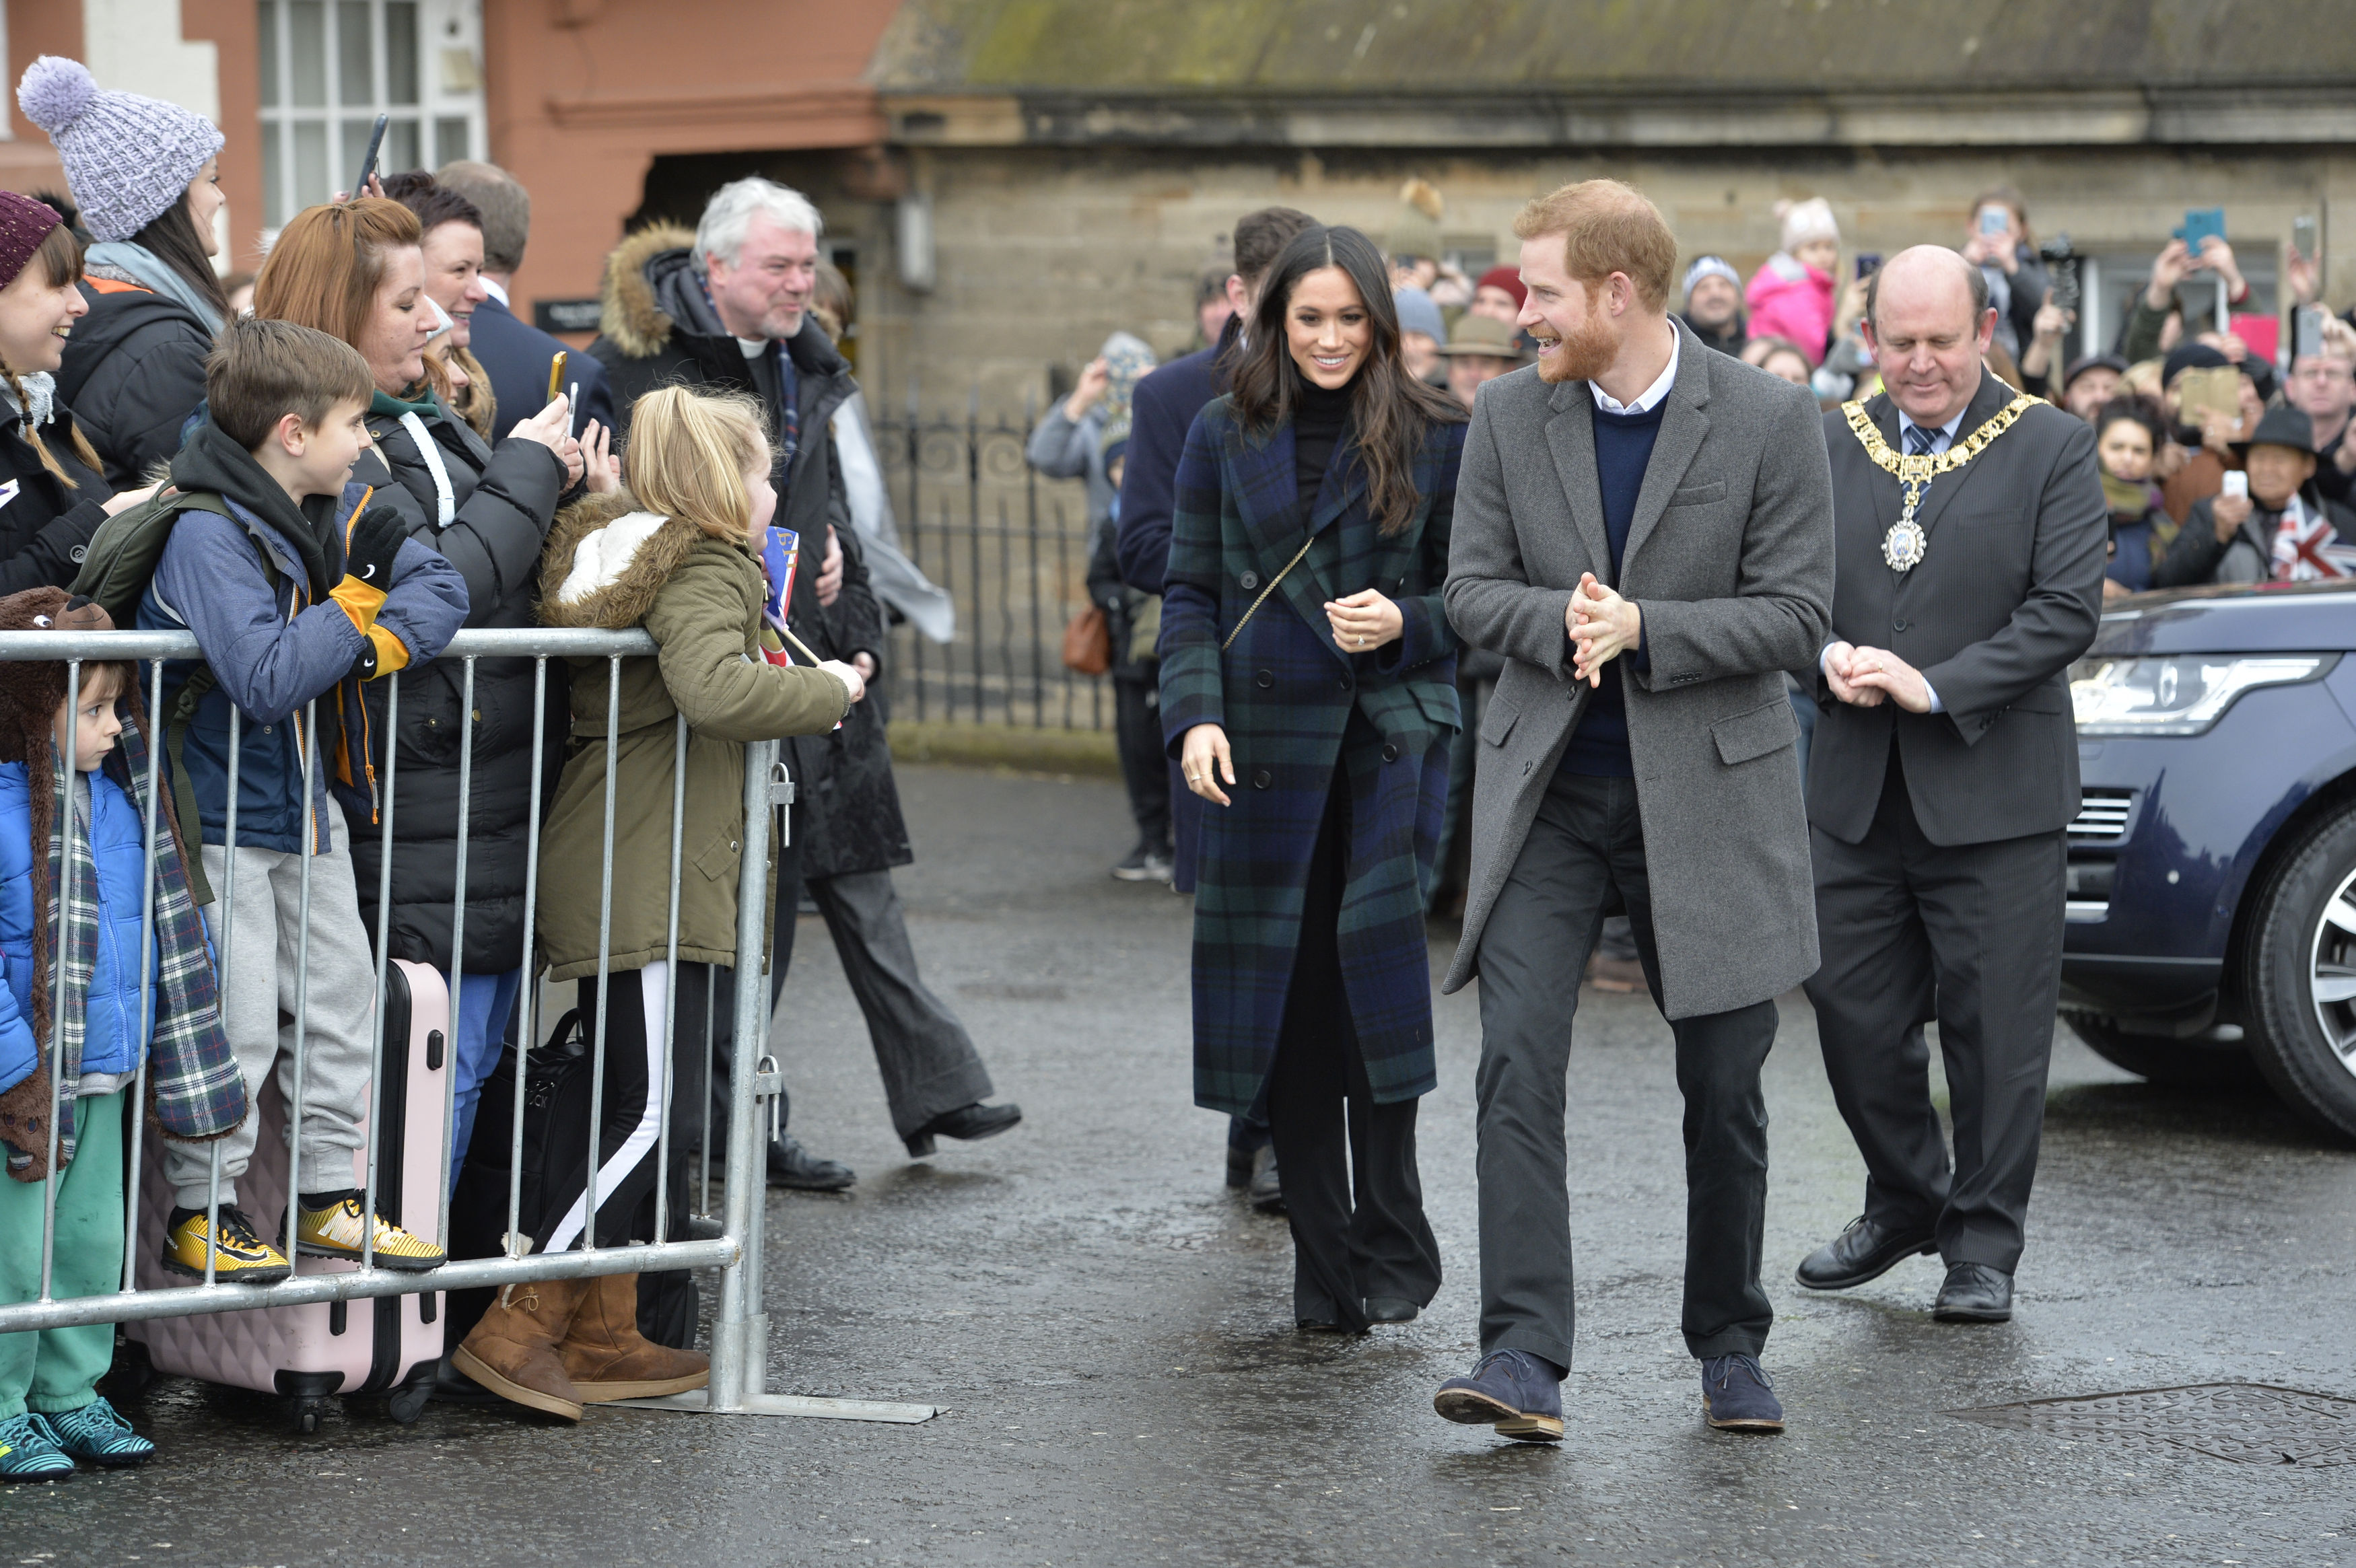 Prince Harry and Meghan Markle arriving at Edinburgh Castle (John Linton/PA)